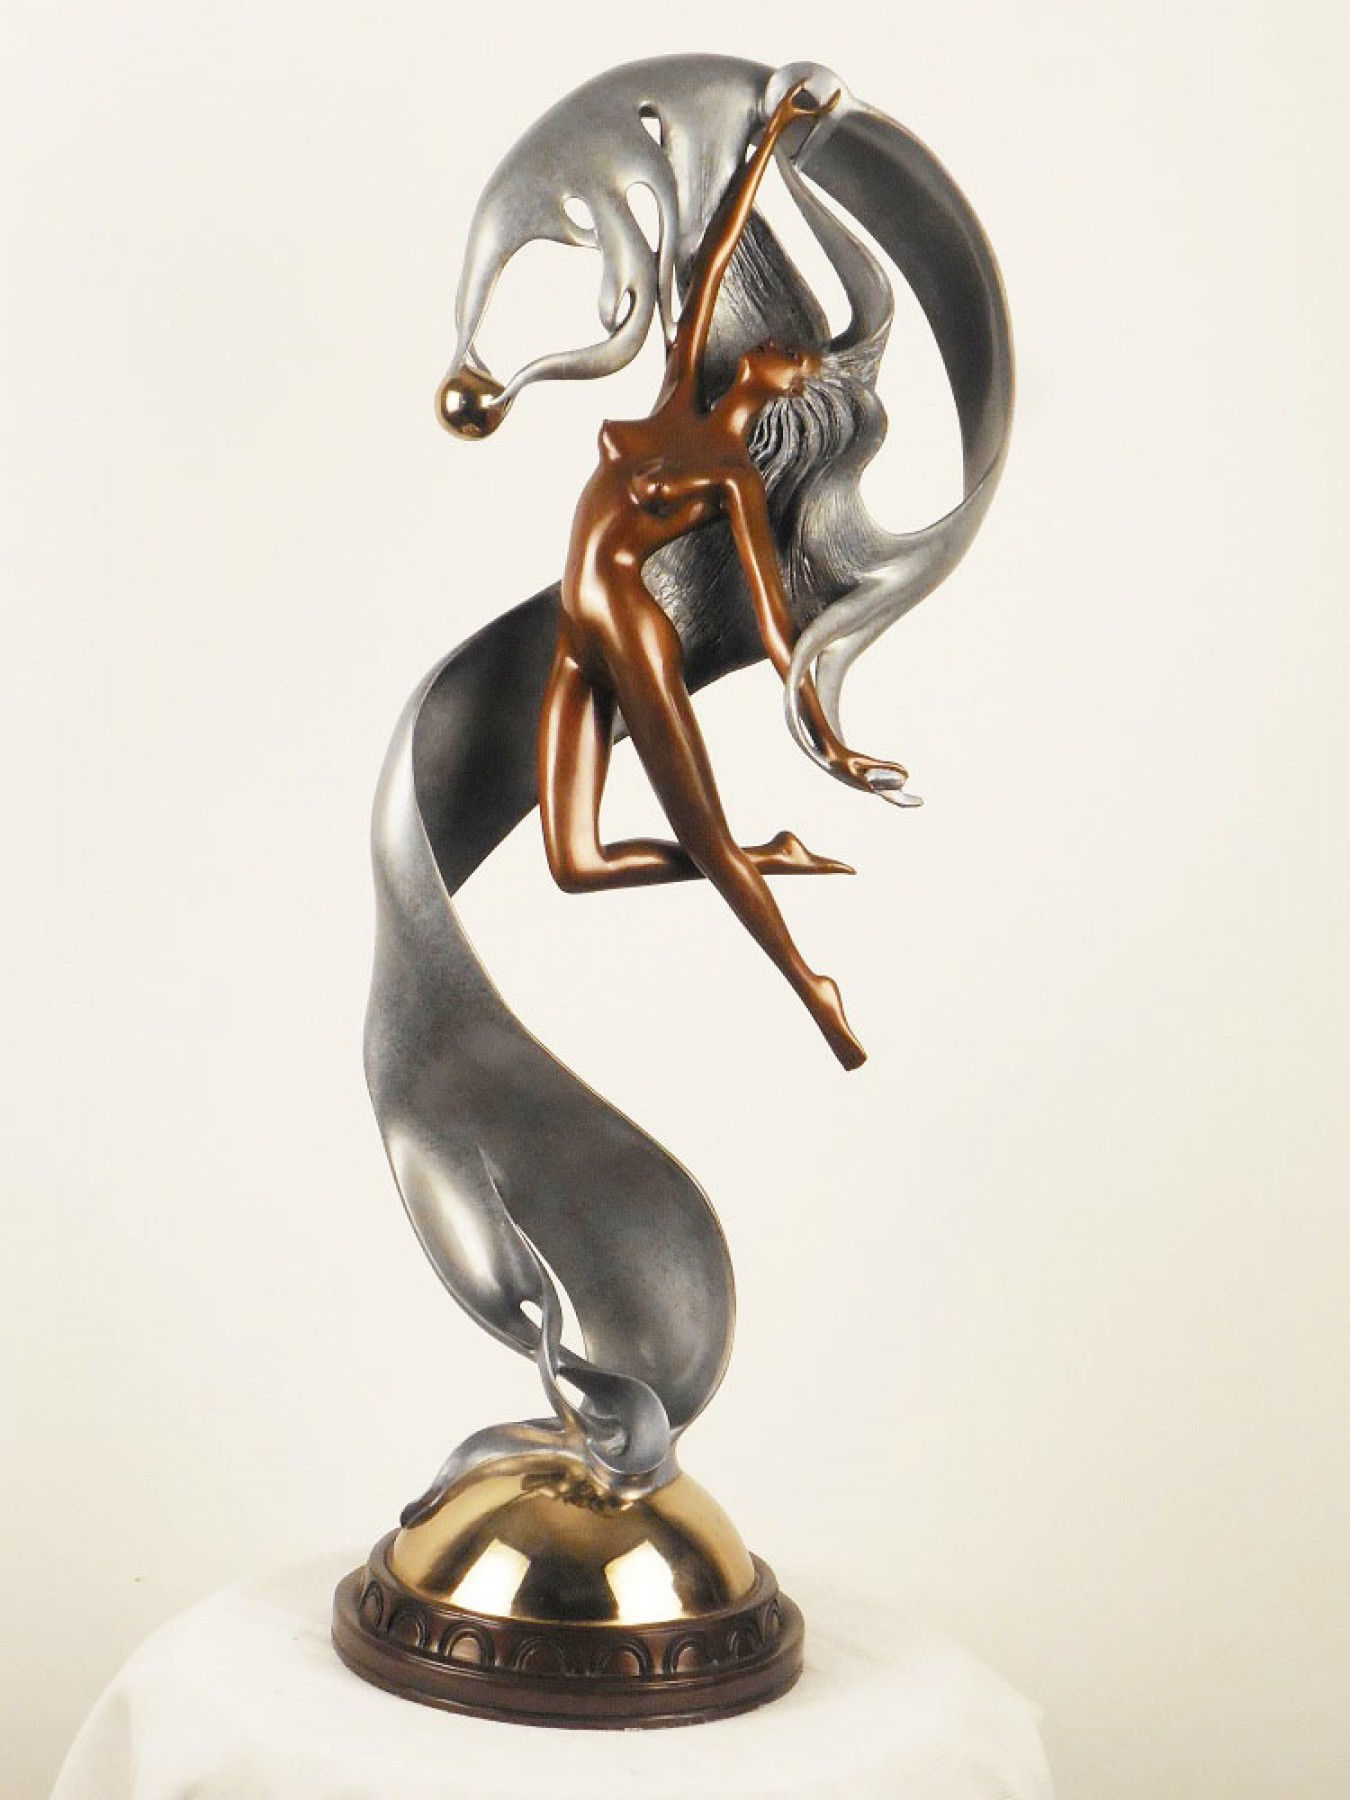 Perla Bronze Sculpture 1987 25 in